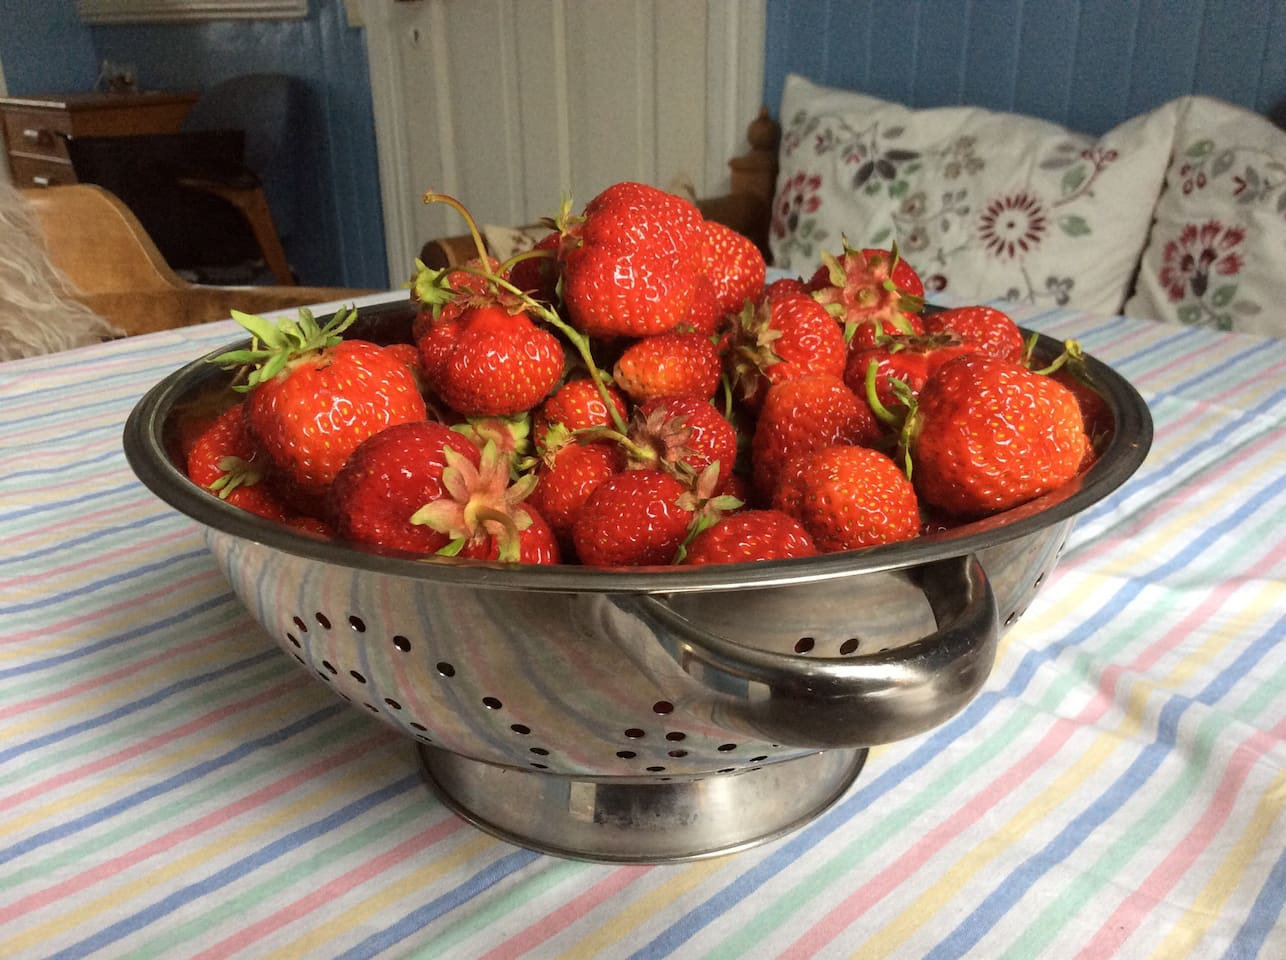 Strawberry from our own garden